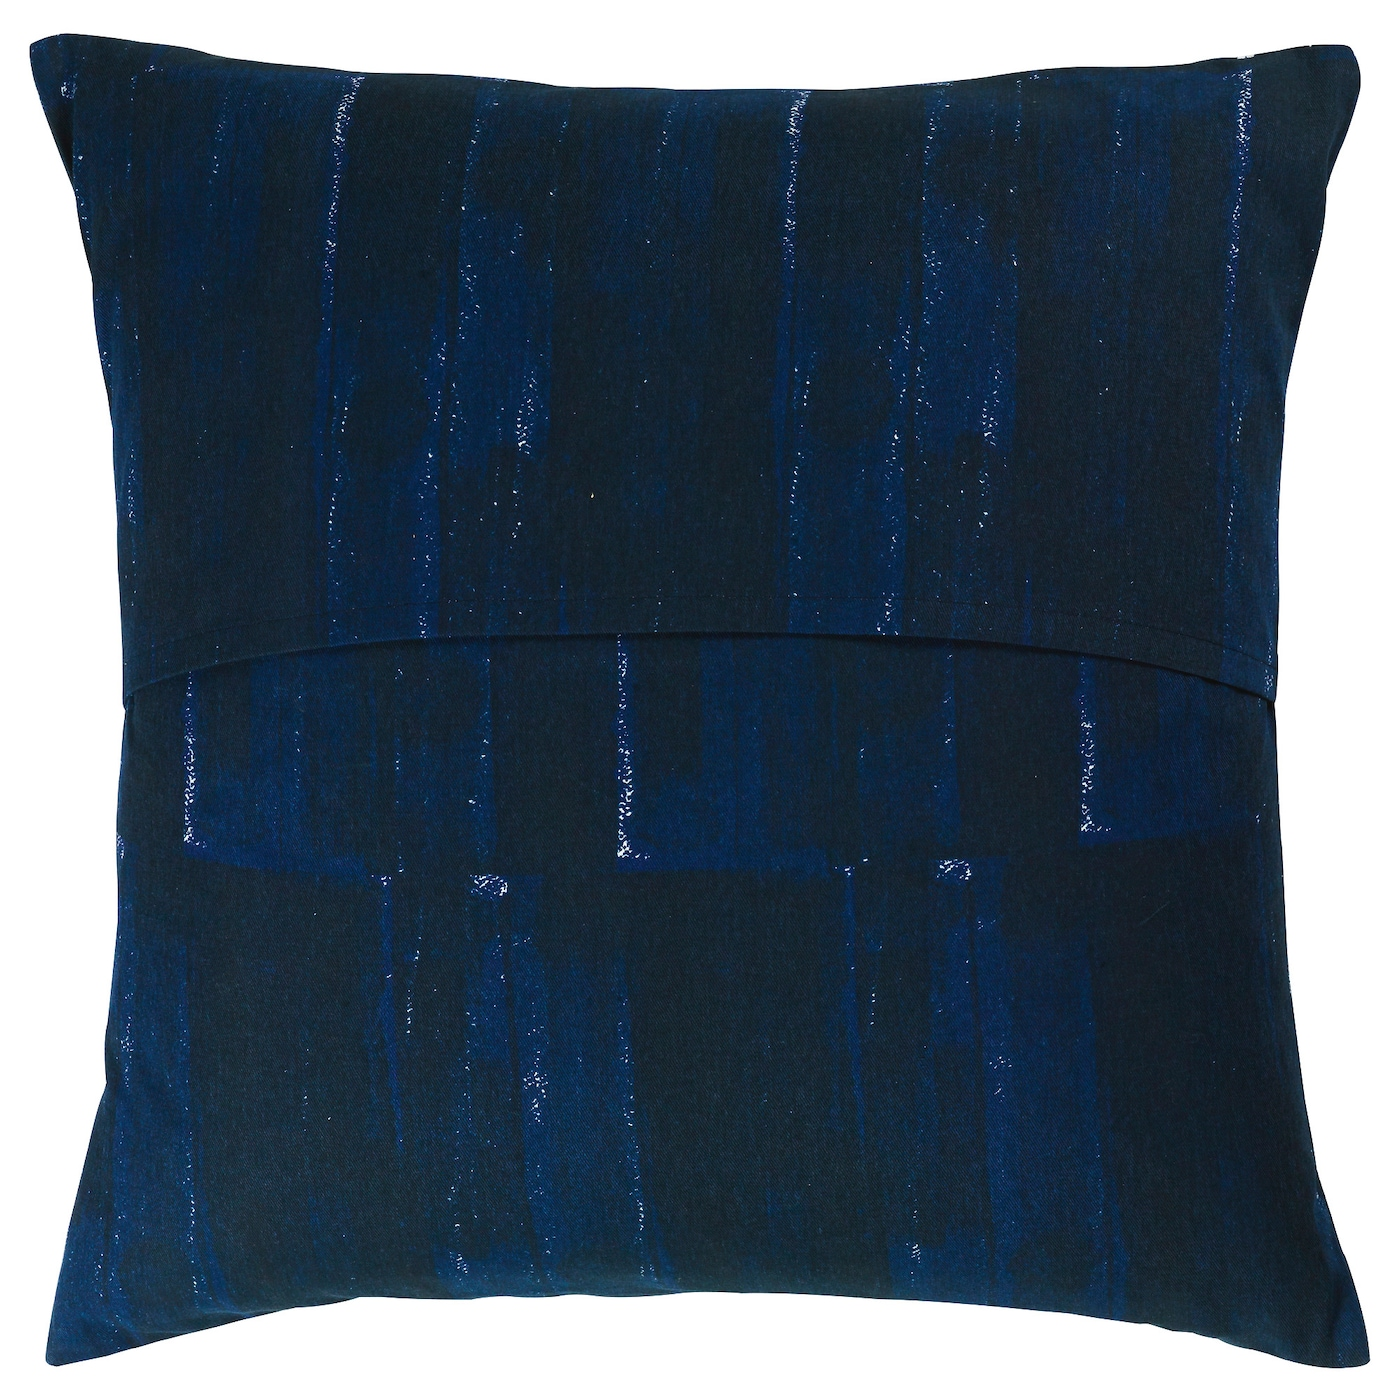 inneh llsrik housse de coussin fait main bleu blanc 50x50 cm ikea. Black Bedroom Furniture Sets. Home Design Ideas